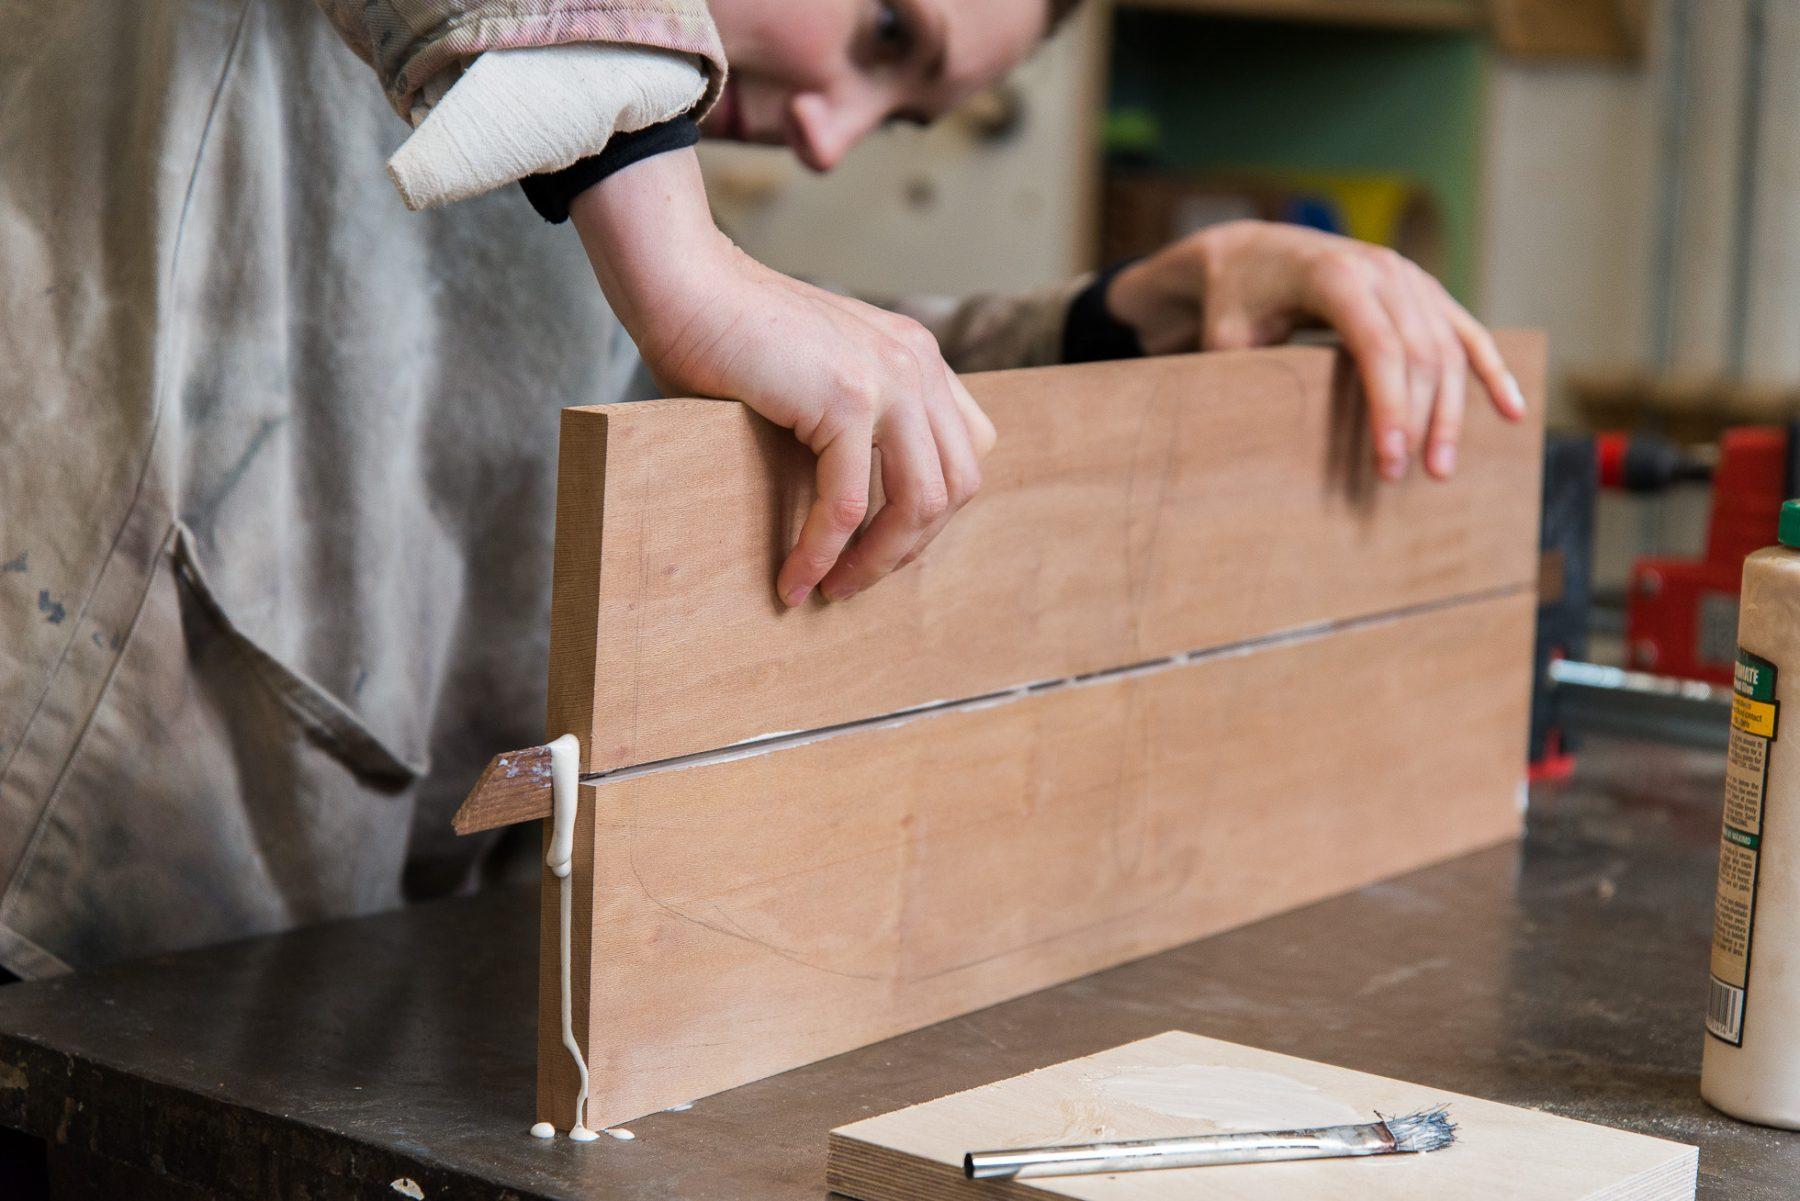 Woodwork student gluing boards in workshop